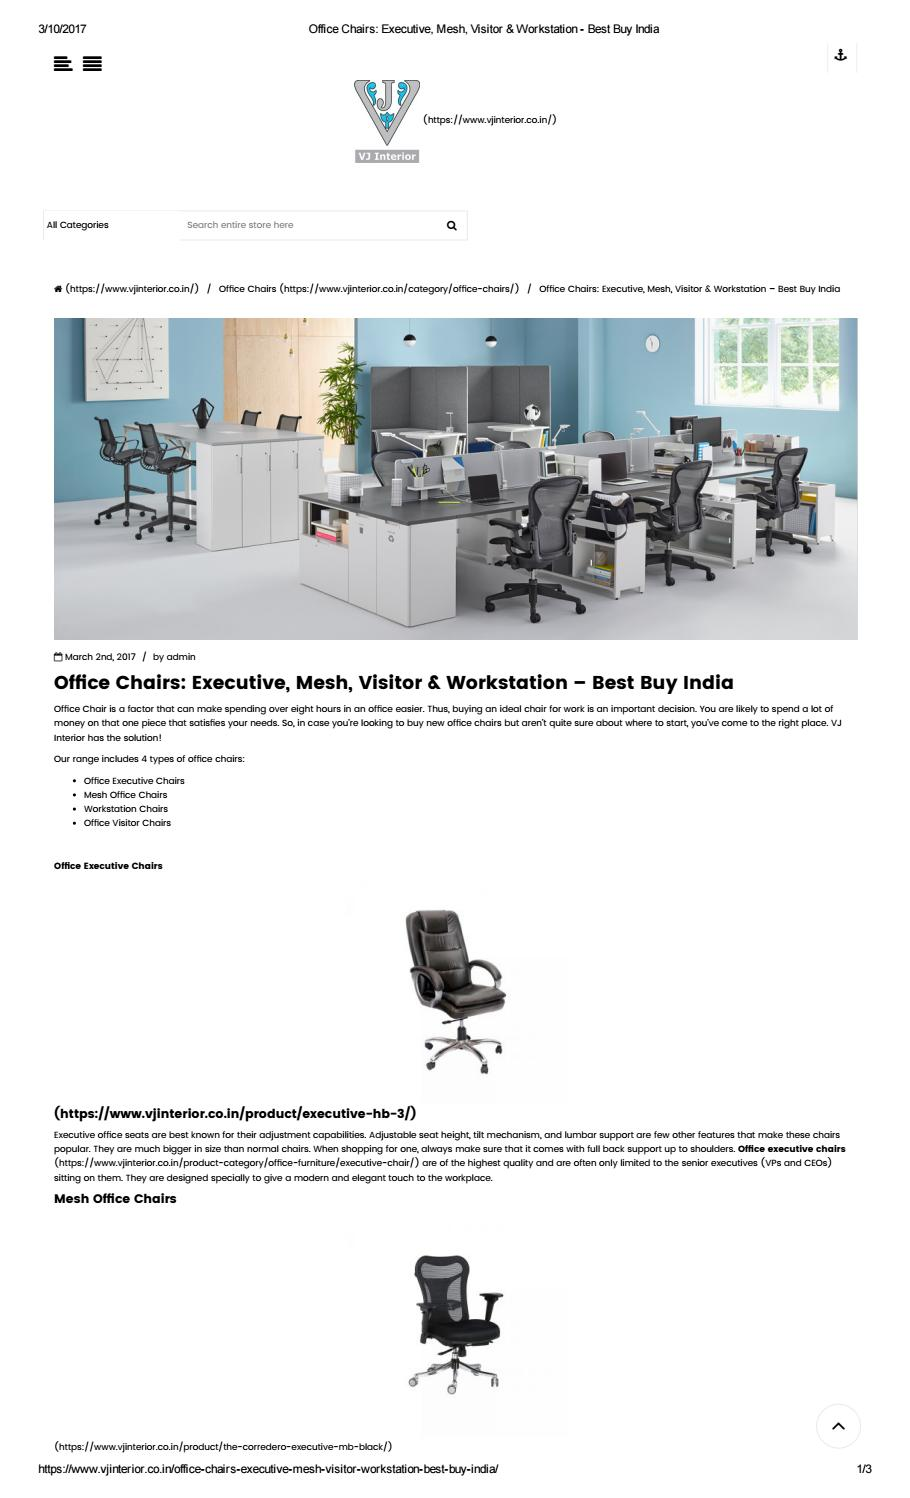 Executive Mesh Visitor Workstation Office Chairs Buy Online By Garima Sharma Issuu